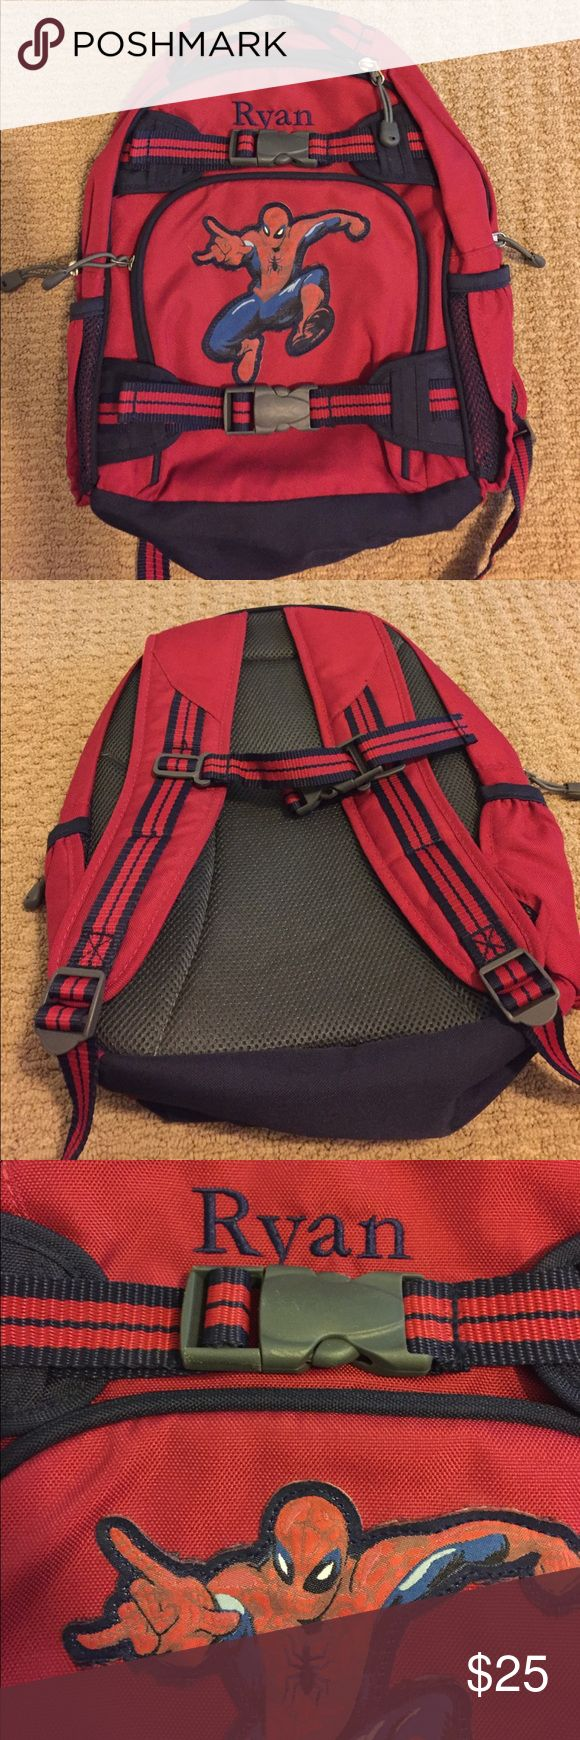 """EUC Pottery Barn Kids Small Backpack Looks virtually like new! Small-size PBK (see photo with sizing info) Red & Navy Spider-Man backpack. Embroidered with name """"Ryan"""". Noticed slight water-marking on back, but it's barely noticeable. No other signs of visible wear! pottery barn kids Other"""